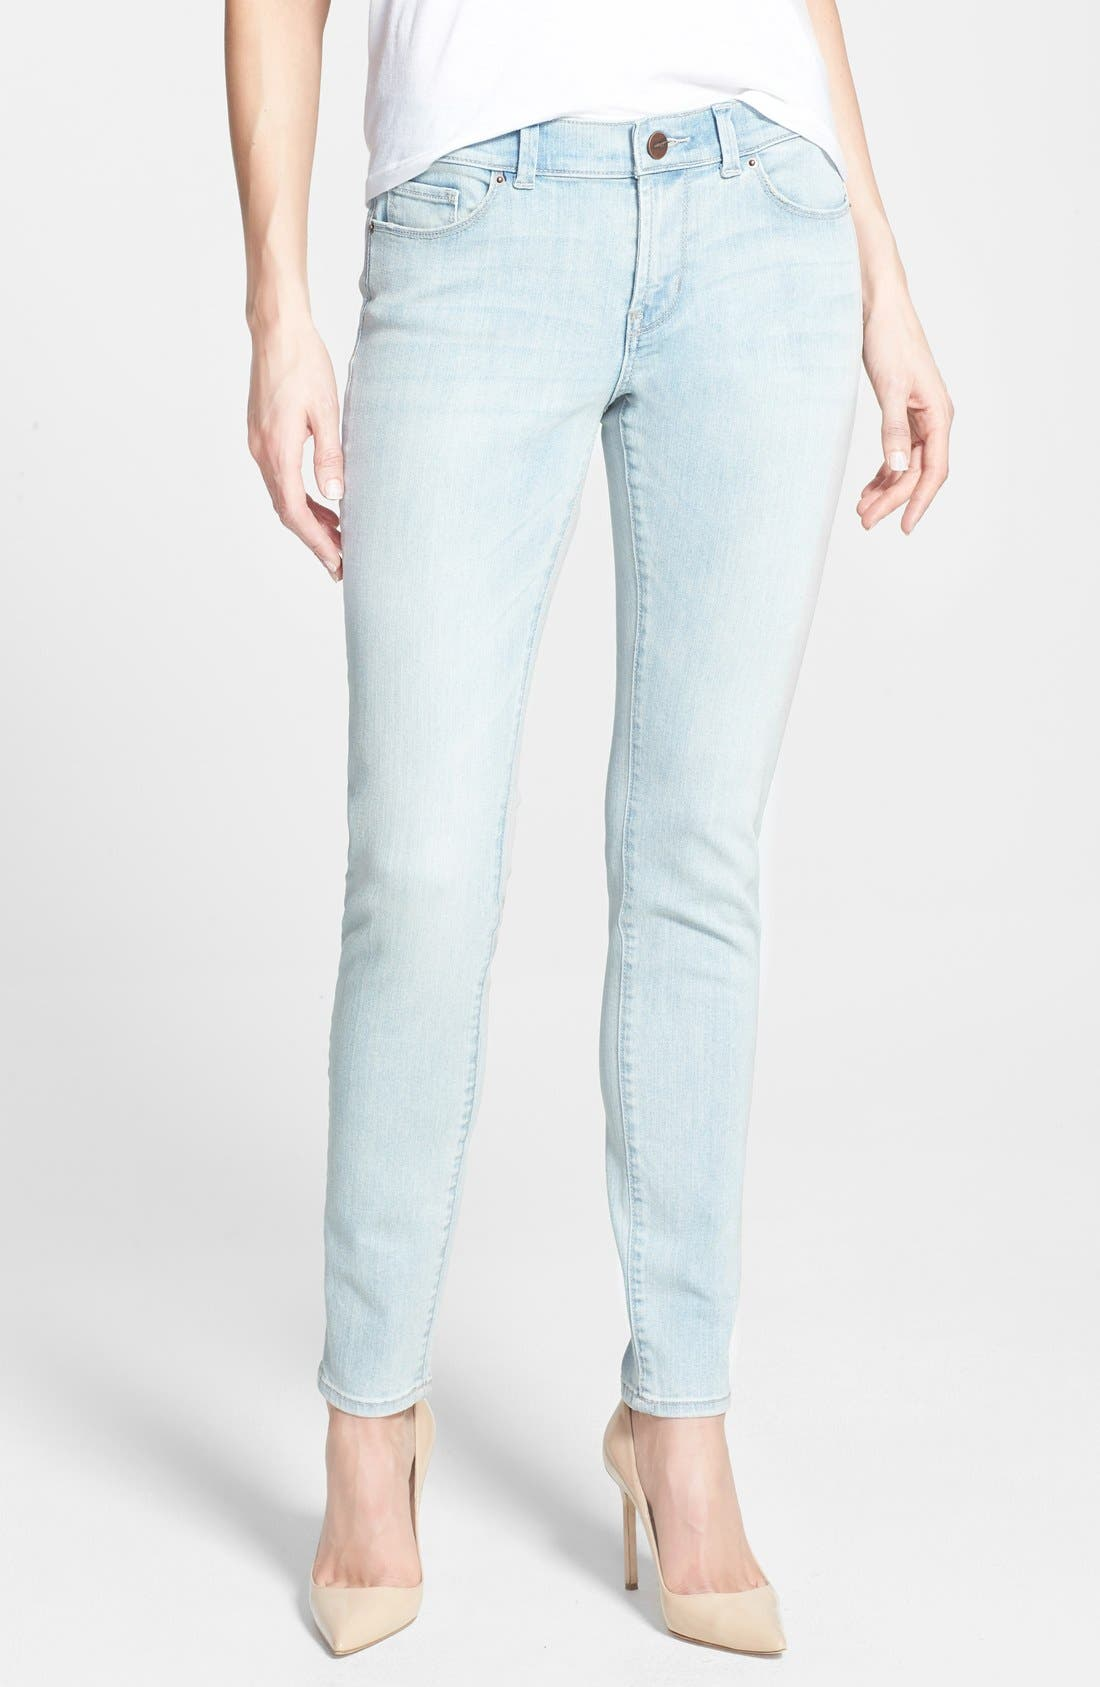 Main Image - Halogen® Plain Pocket Stretch Skinny Jeans (Bleach) (Regular and Petite)